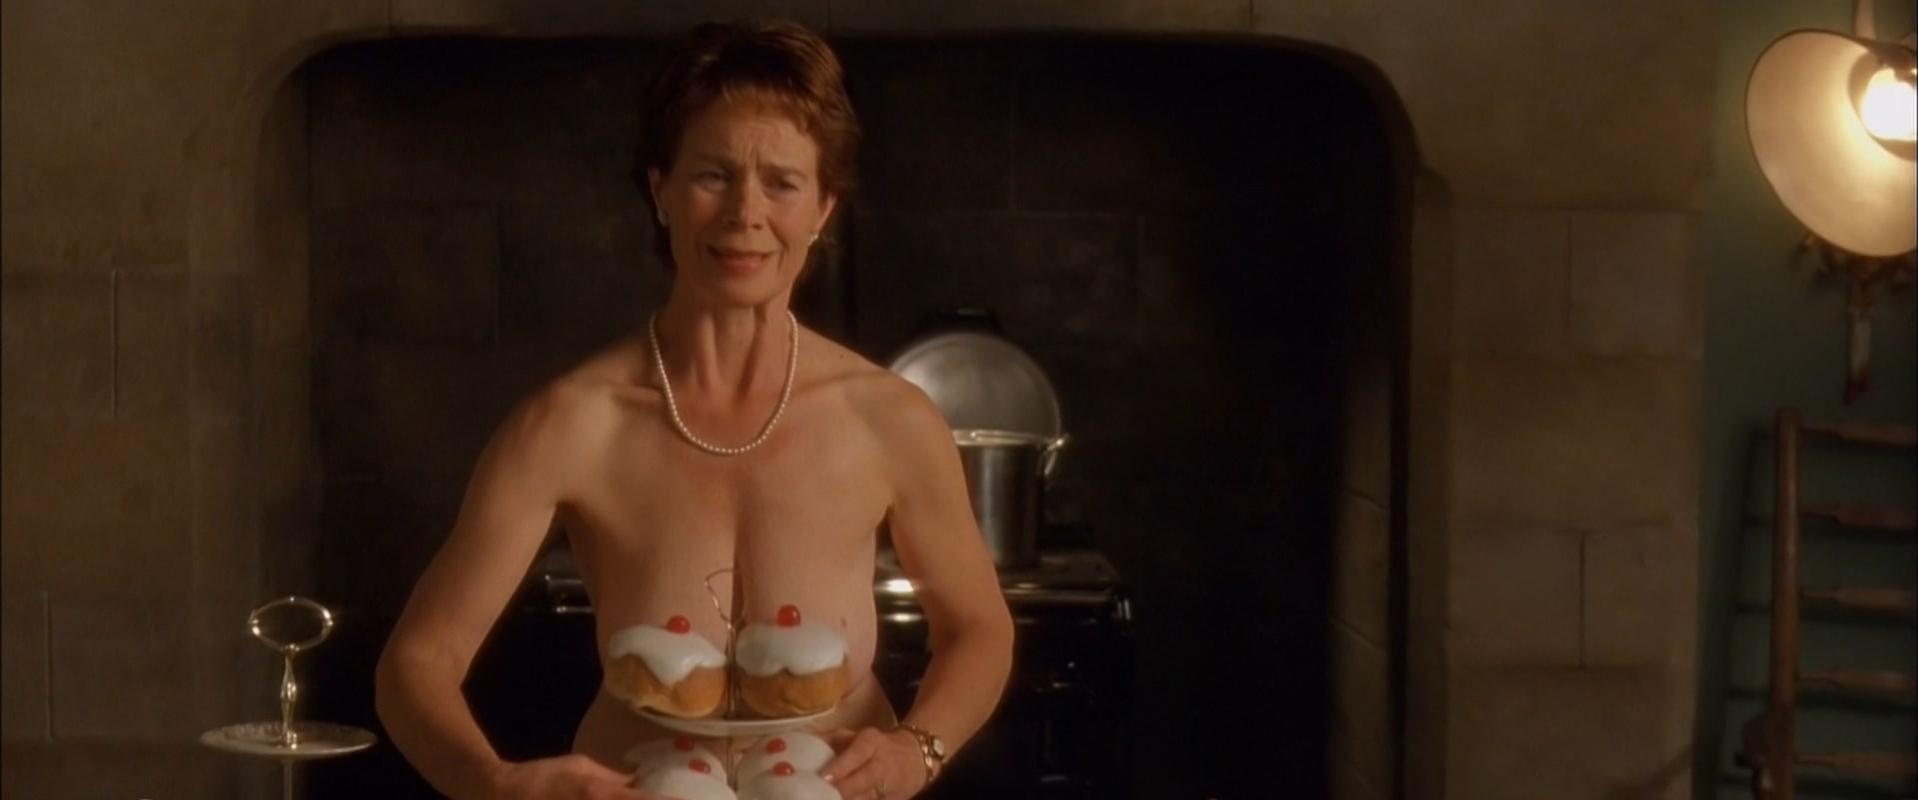 girls topless in movies